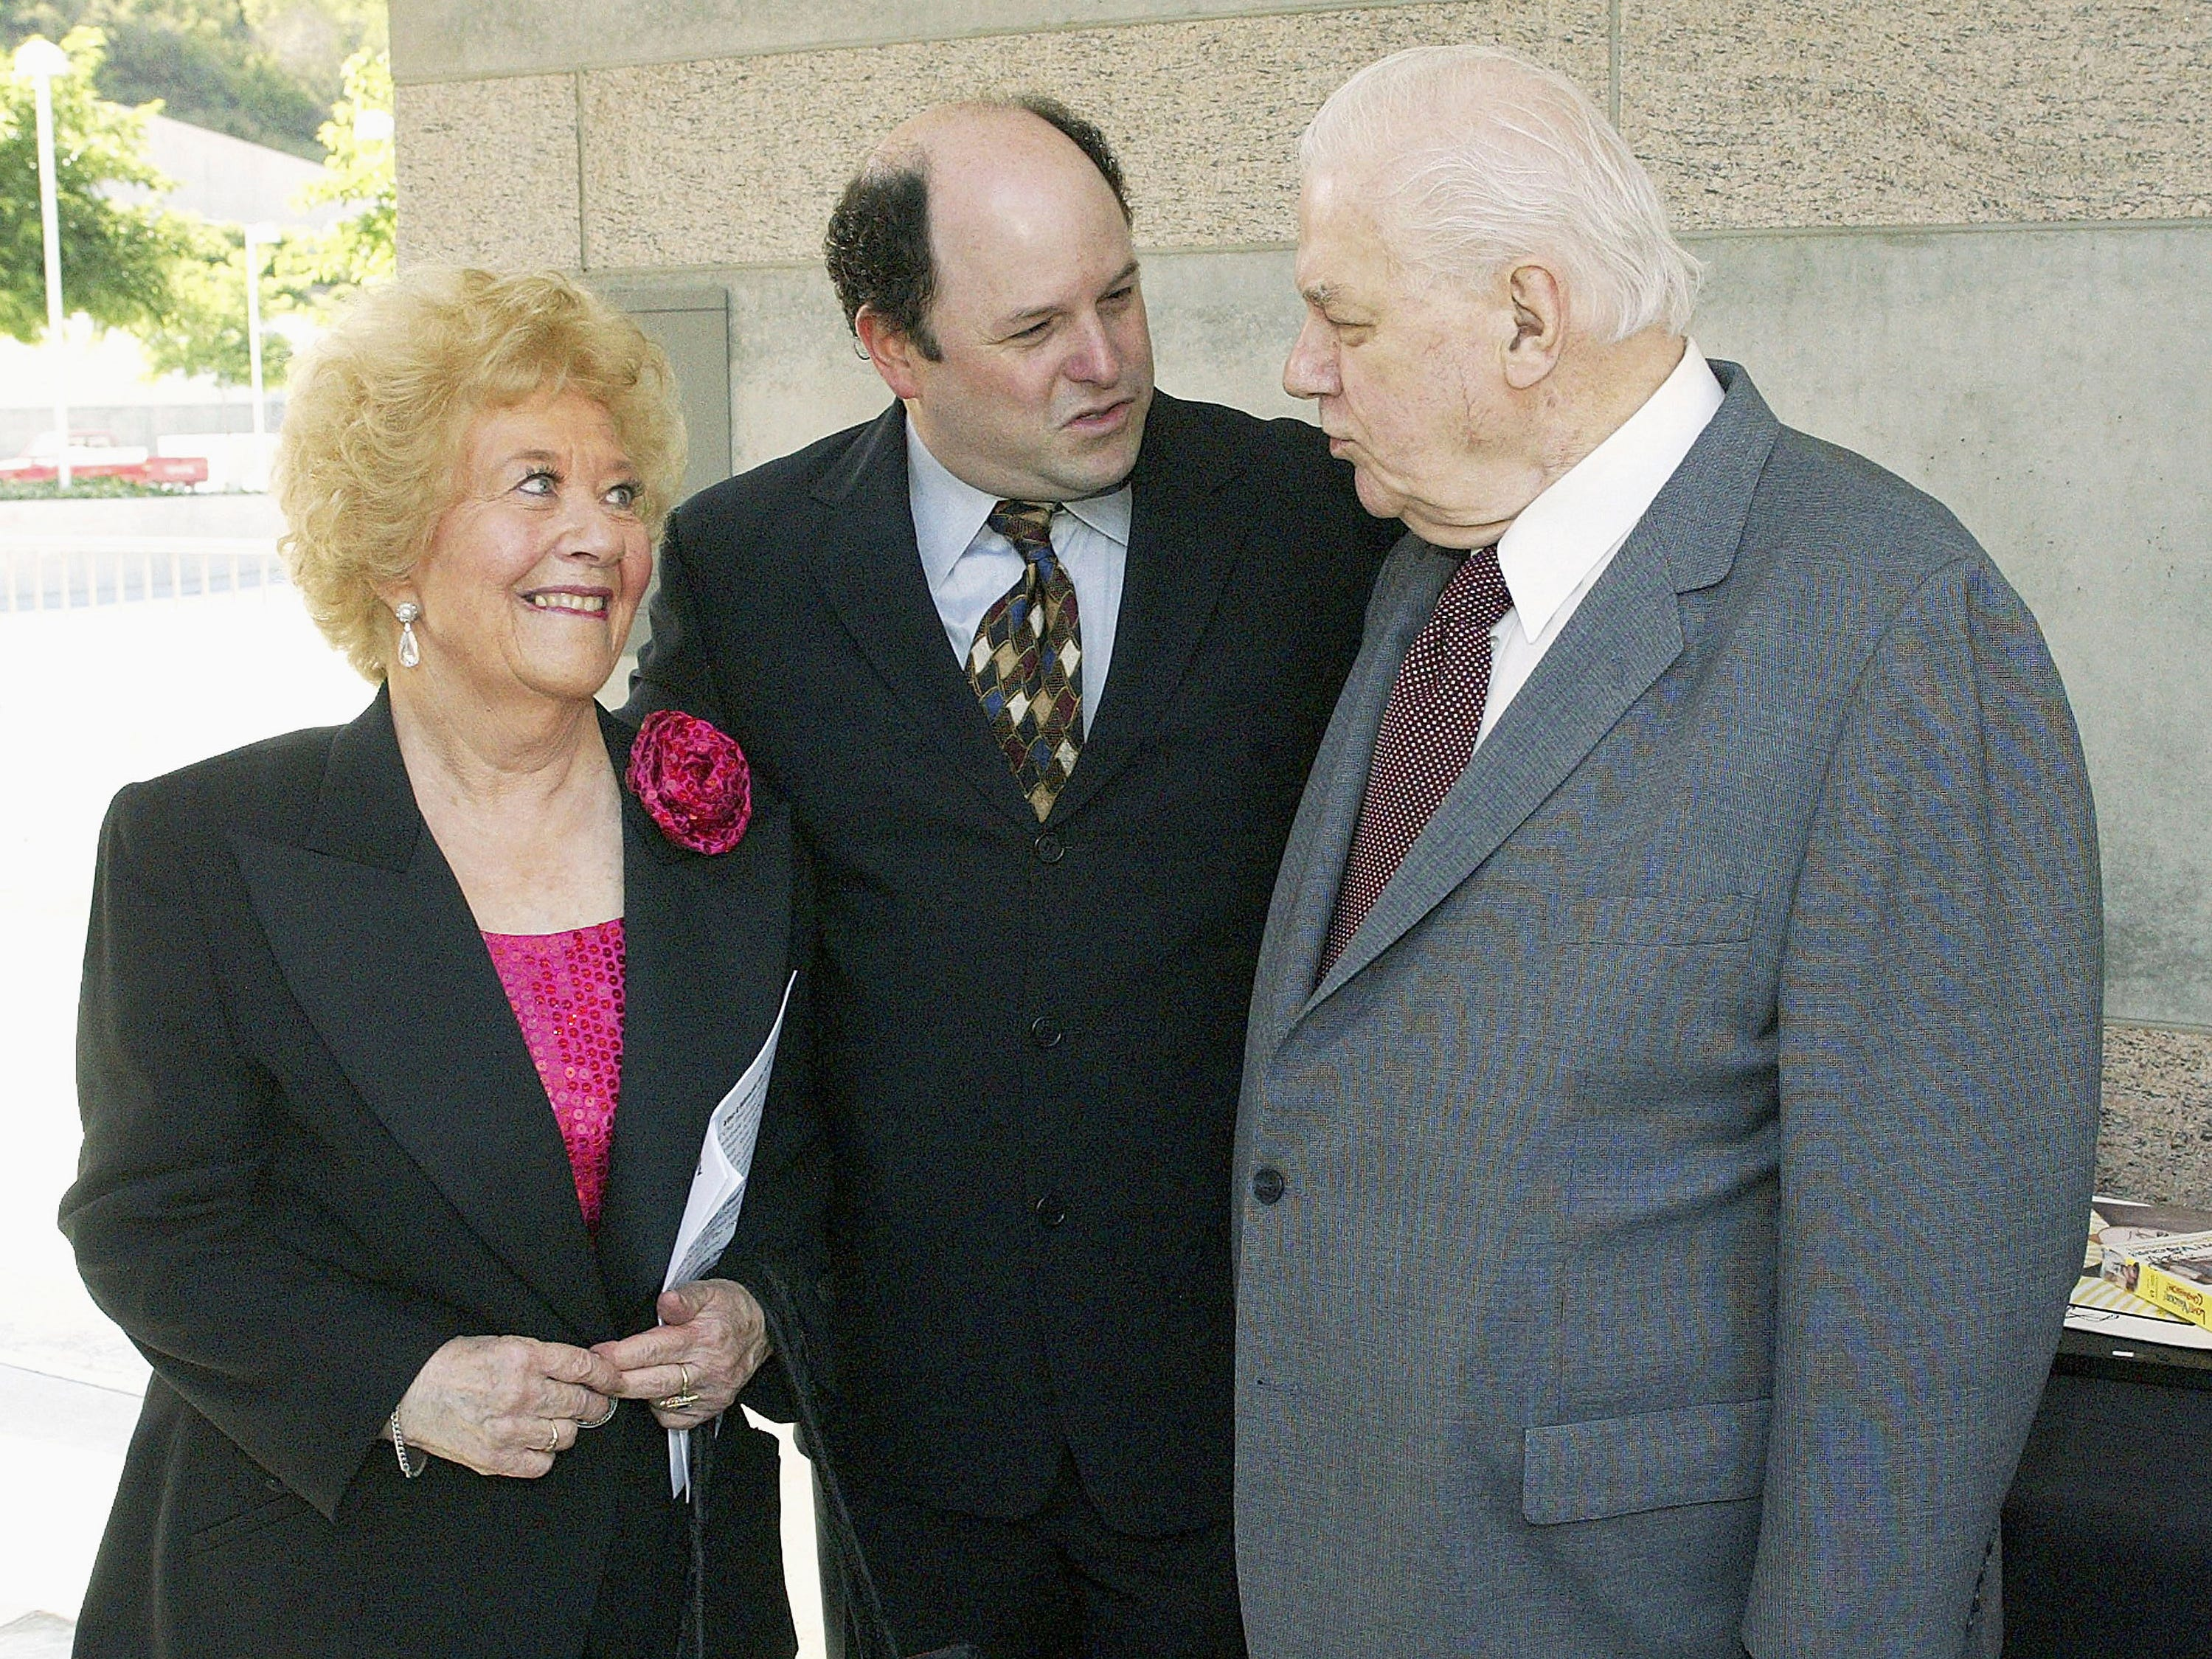 Charlotte Rae, Jason Alexander and Charles Durning, right, attend the 2004 Actors' Fund/Variety Tony Awards Party at the Skirball Cultural Center on June 6, 2004, in Los Angeles.